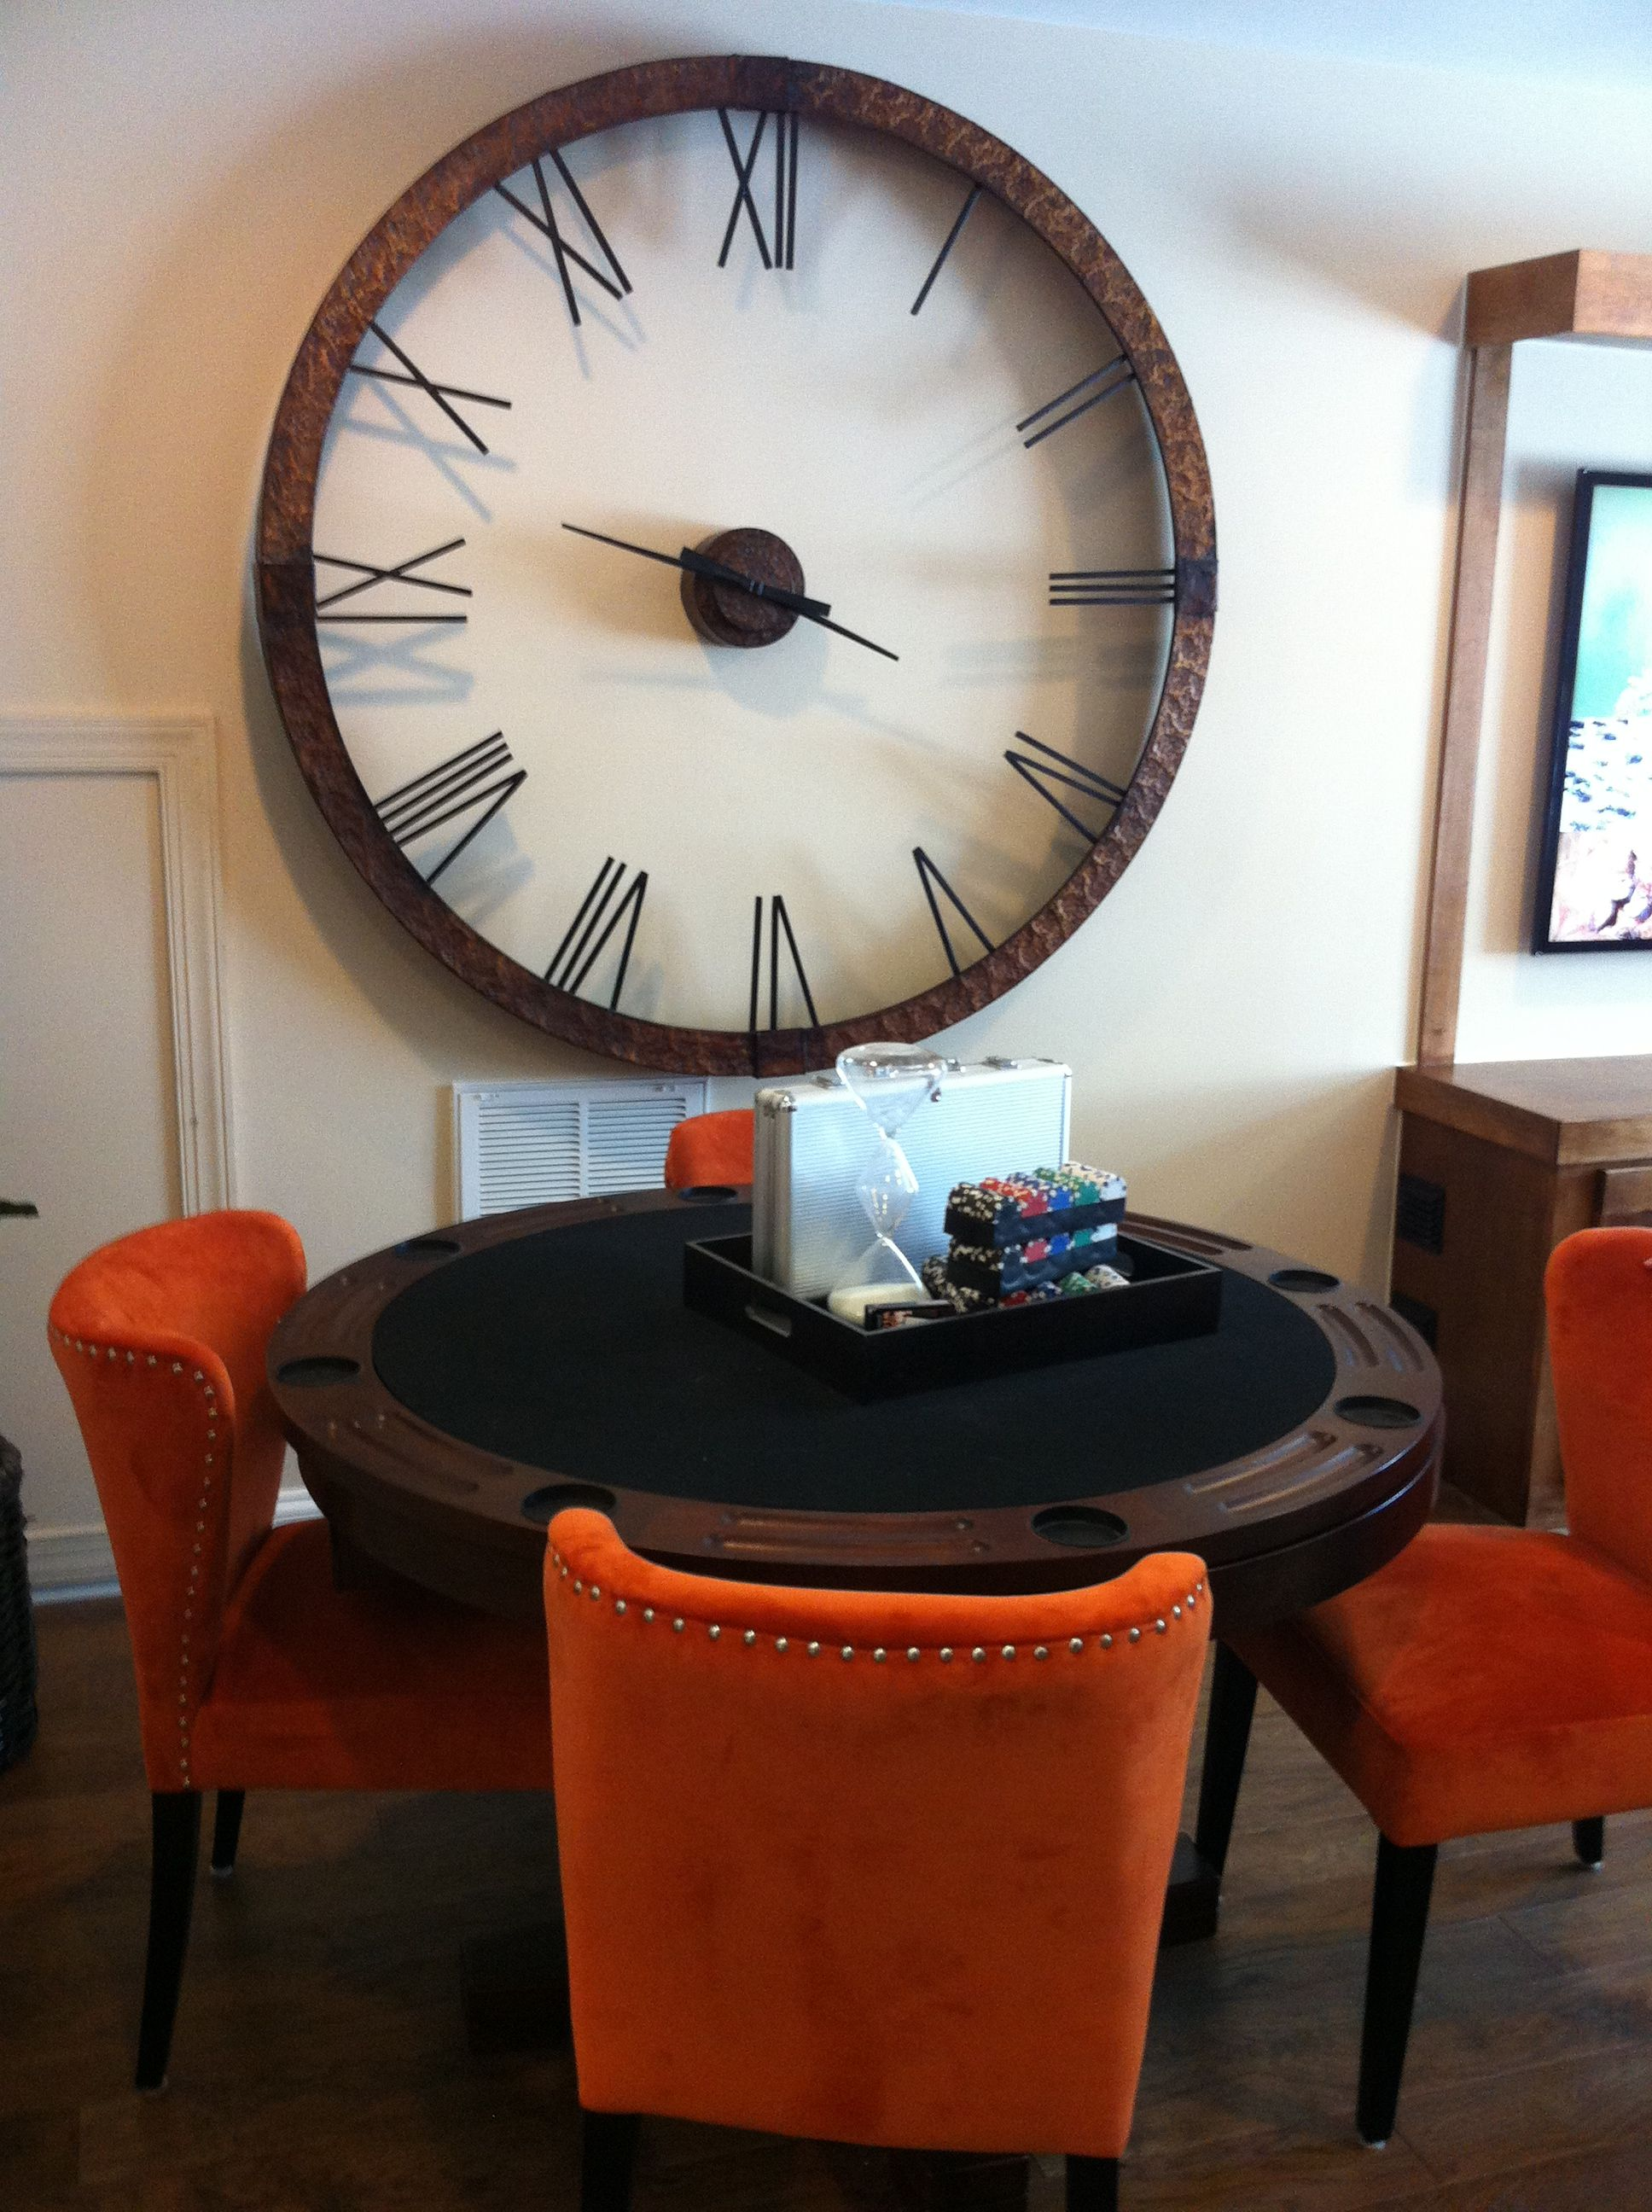 Beautiful Large Wall Clock Would Replace Hands With Sightly Longer Ones The Current Hands Look Lost On The Fa Home Decor Kitchen Wall Clocks Large Wall Clock